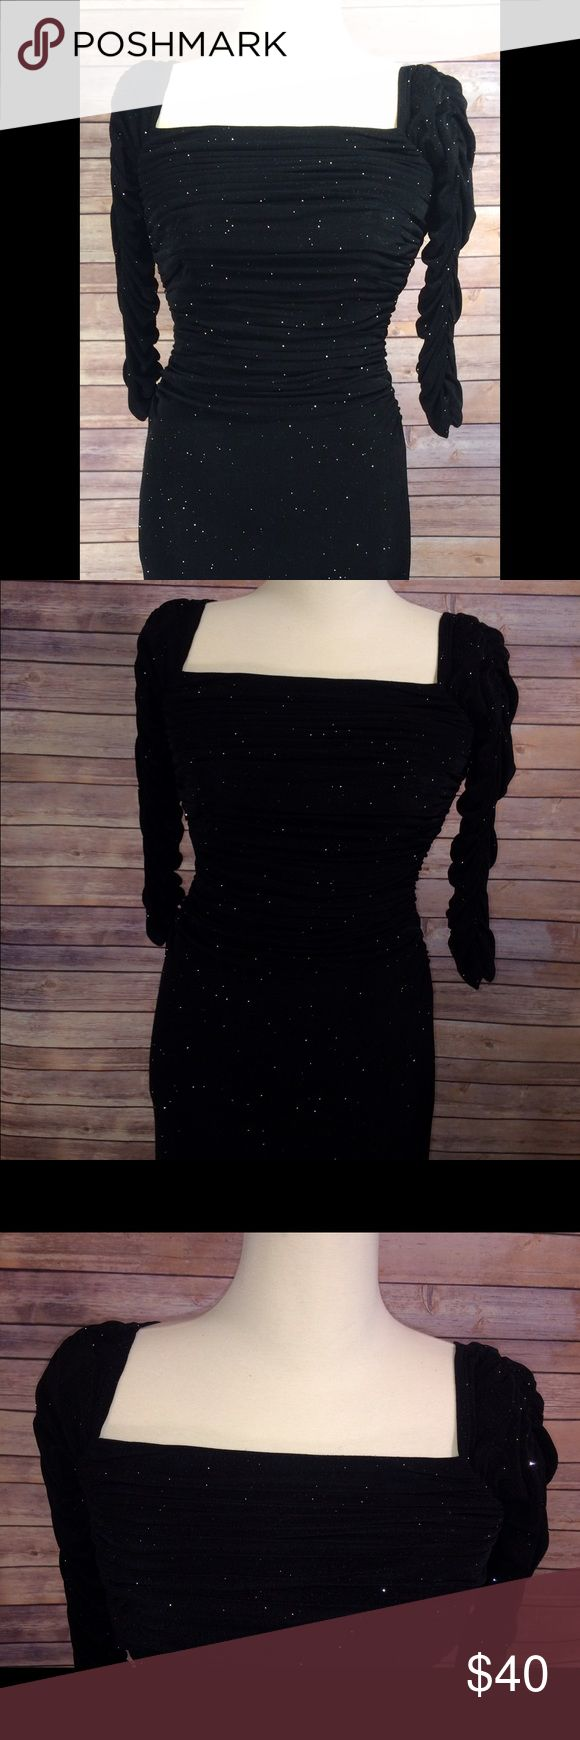 Laundry by Shelli Segal Black Evening Dress Black With silver within the fabric Laundry by Shelli Segal Dresses Wedding